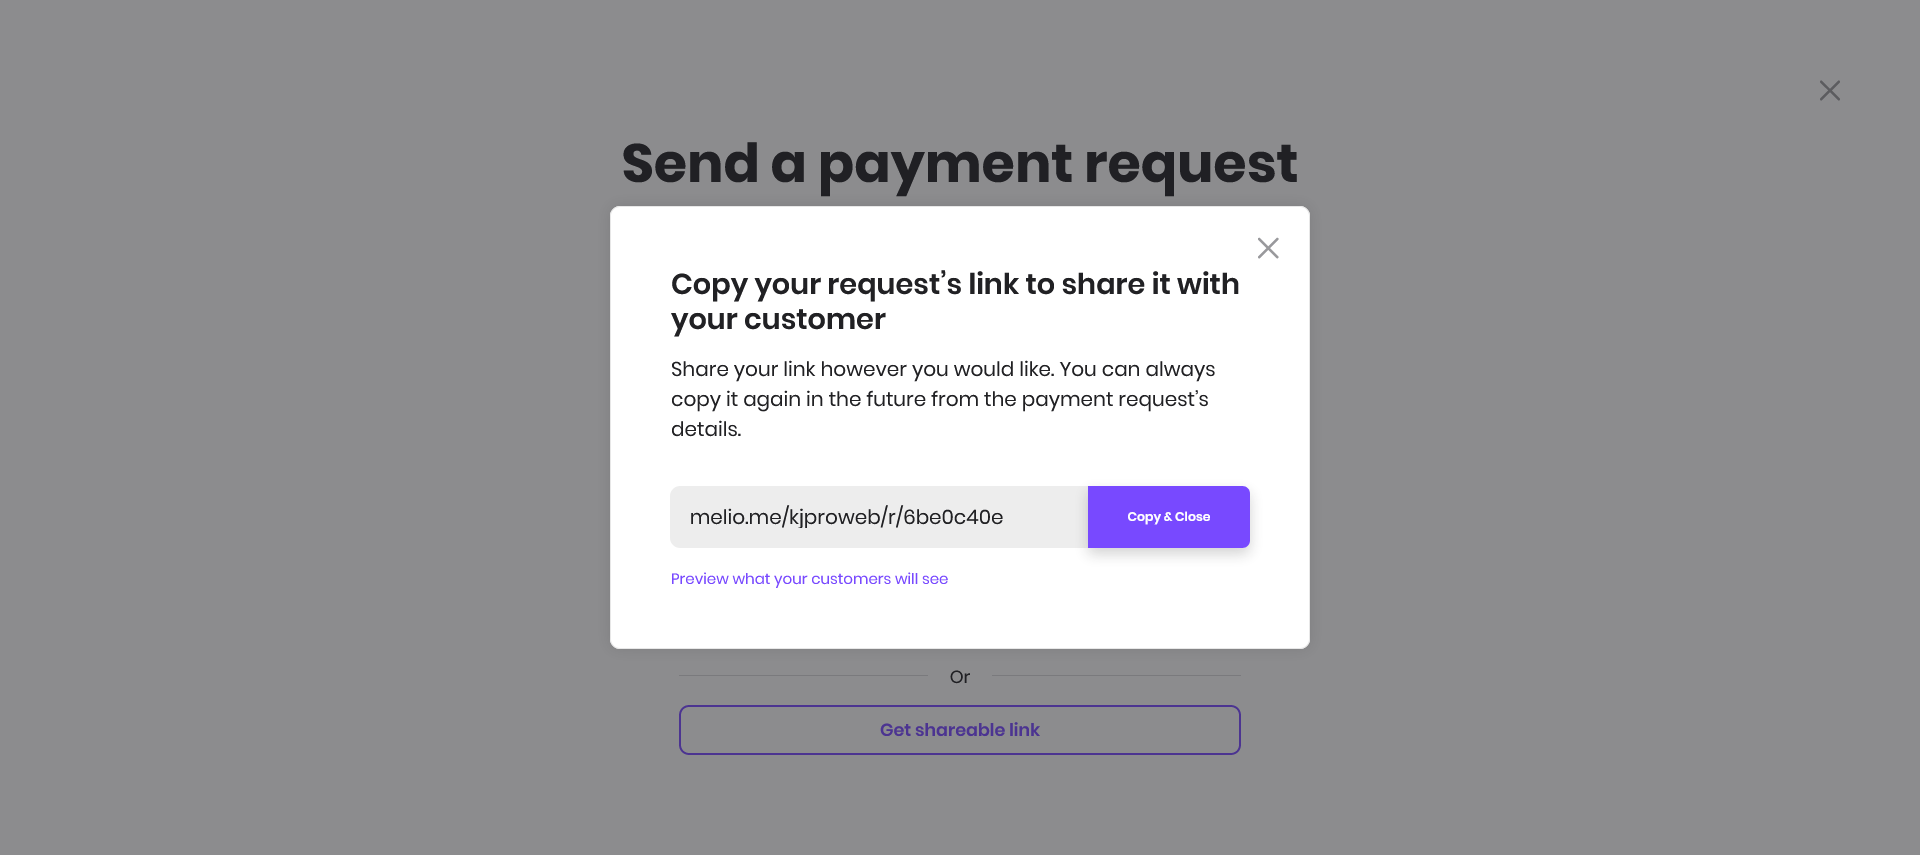 Heres What a Request For Payment Link Looks Like part I 1